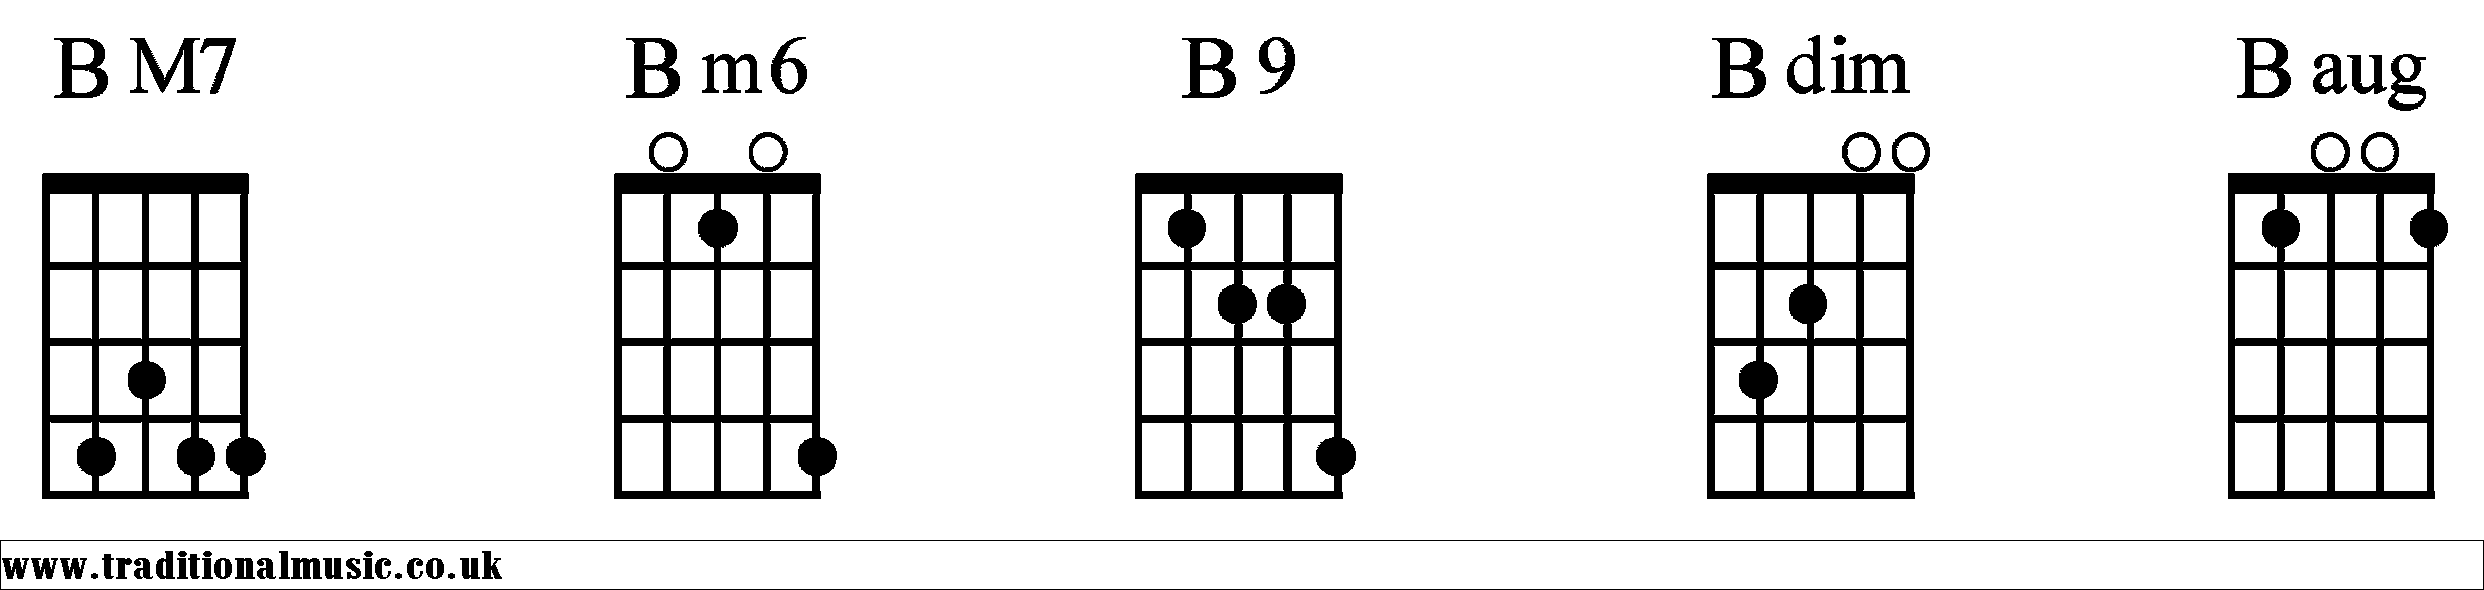 Guitar Chords Bm7 - Viewing Gallery